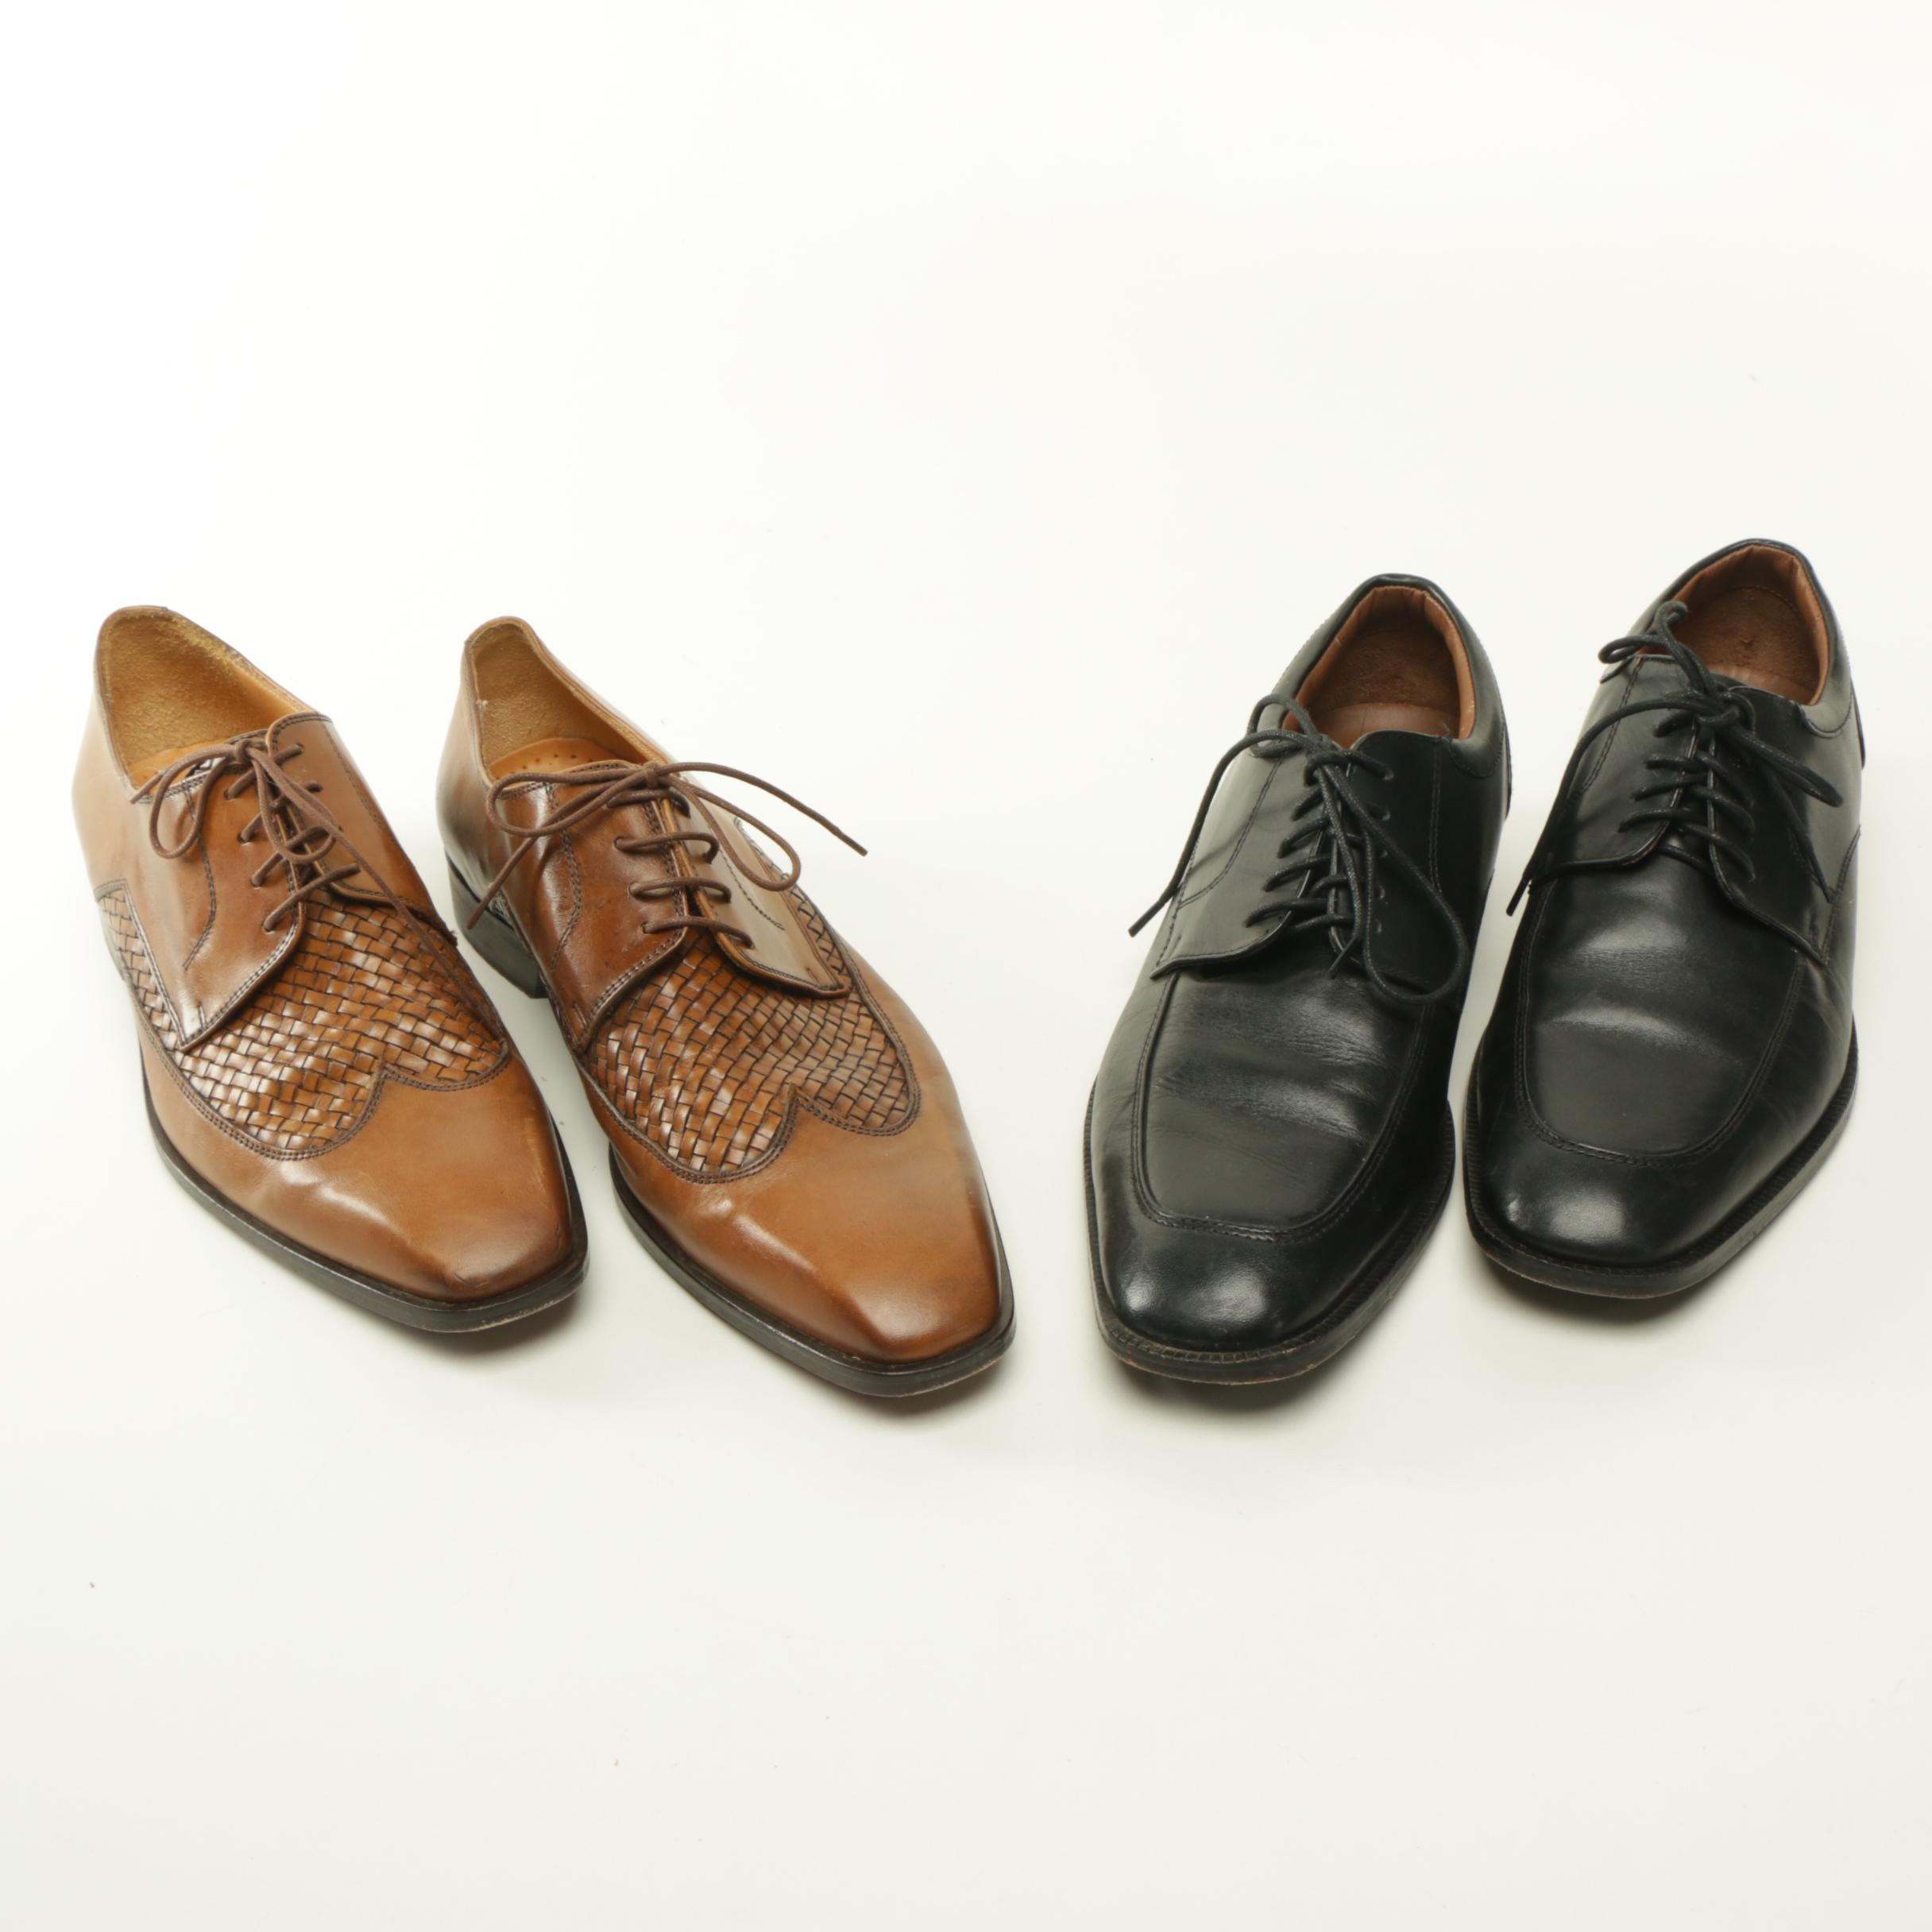 Men's Leather Dress Shoes Including Saks Fifth Avenue Wingtips